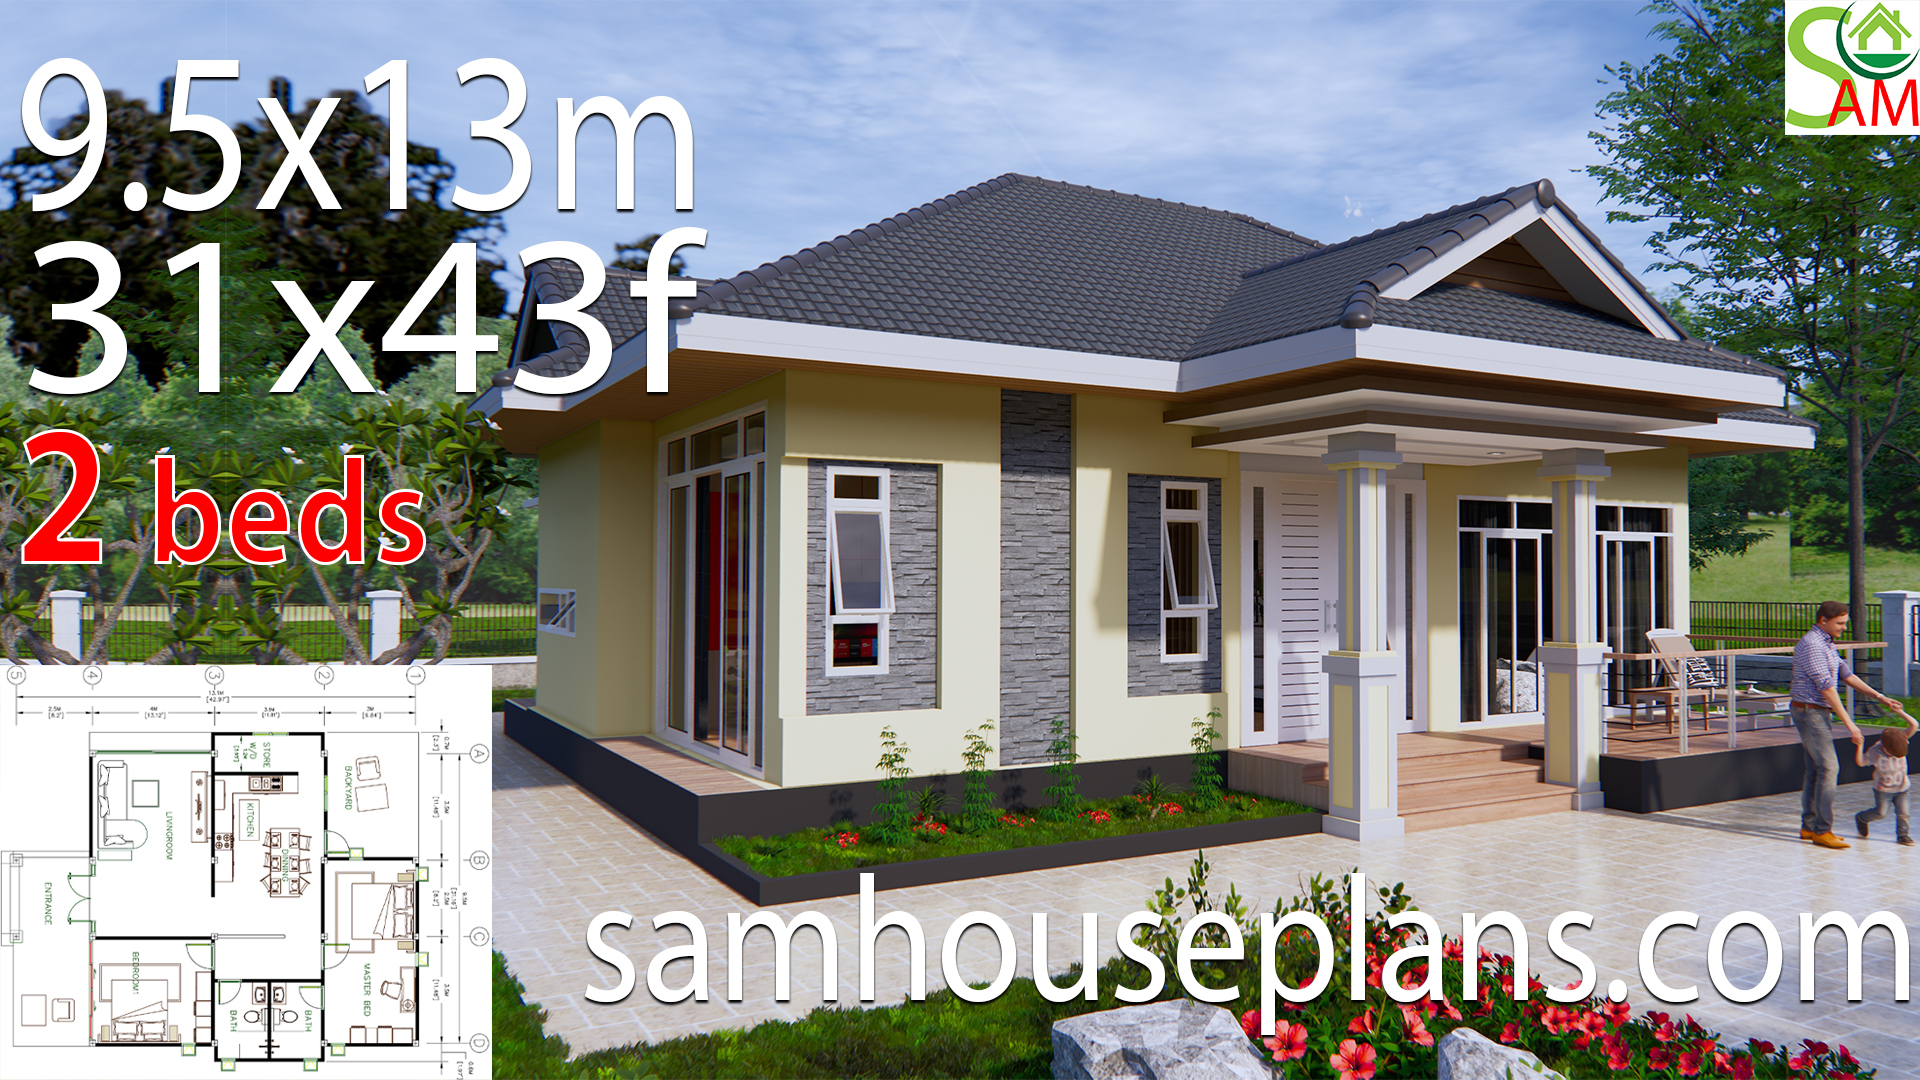 House Plans 31x43 Feet 9.5x13 Meters 2 Bedrooms Hip roof - SamHousePlans